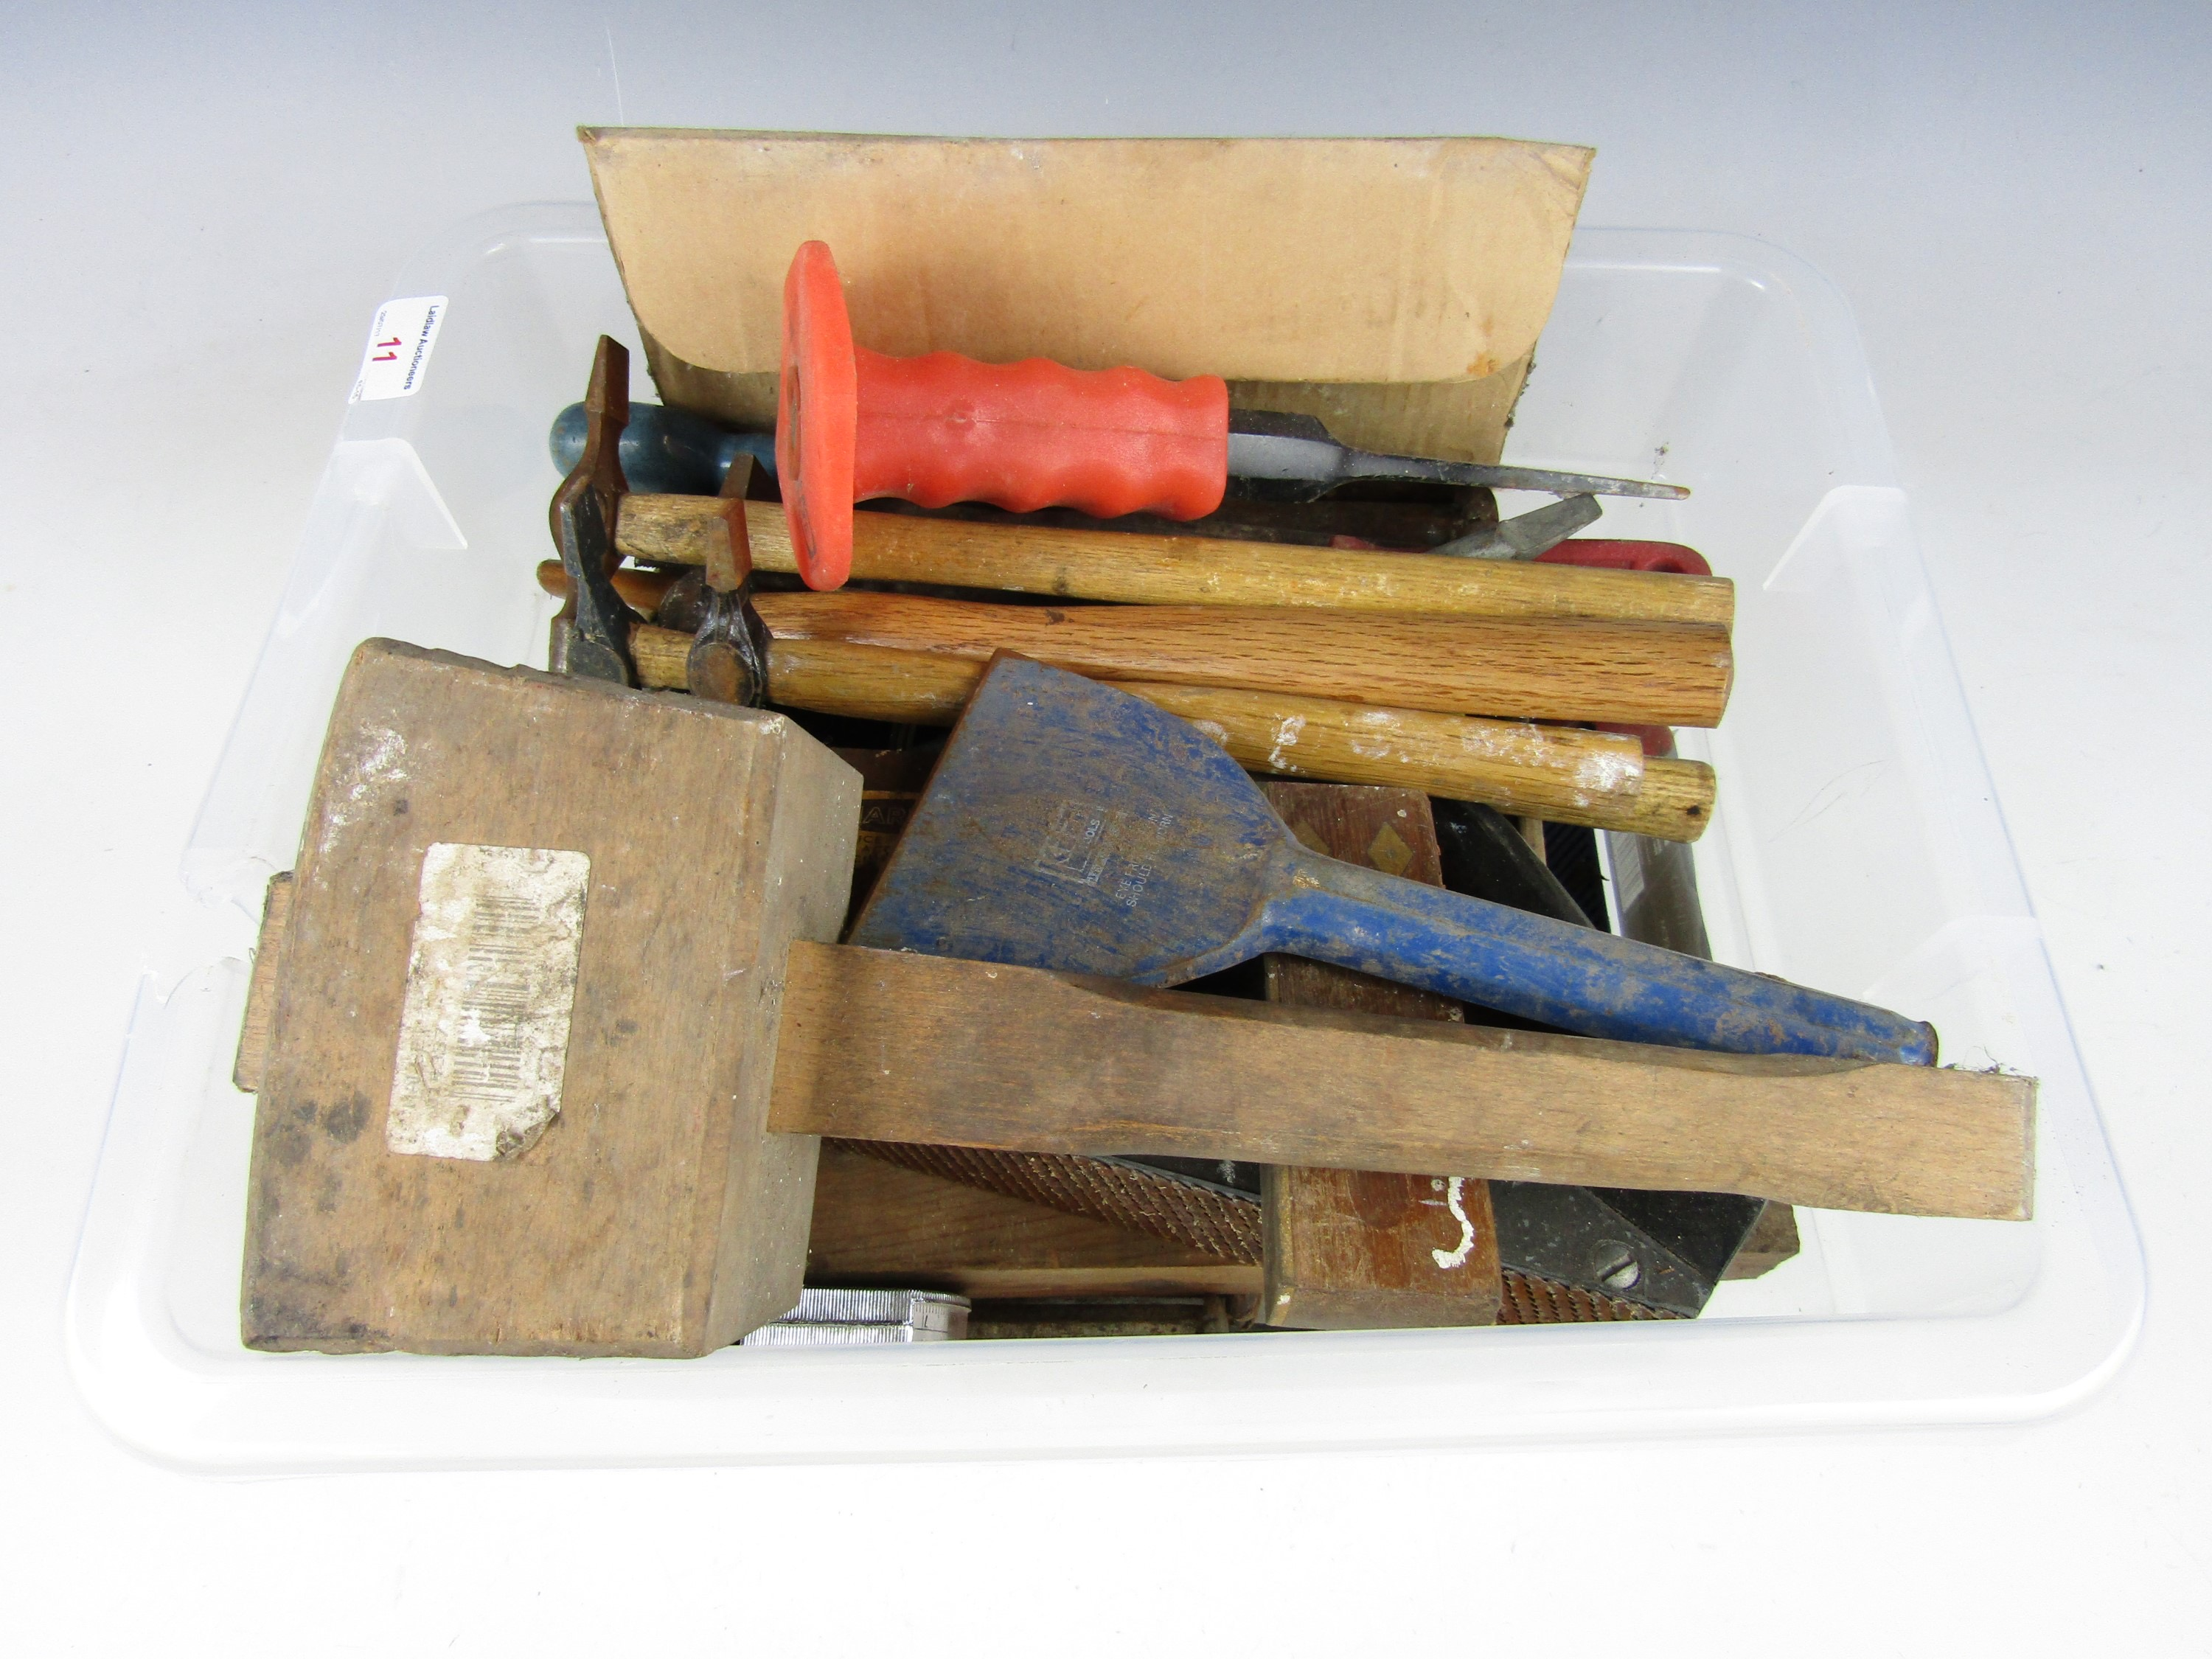 Lot 11 - Sundry tools including hammers, bolster, chisels etc